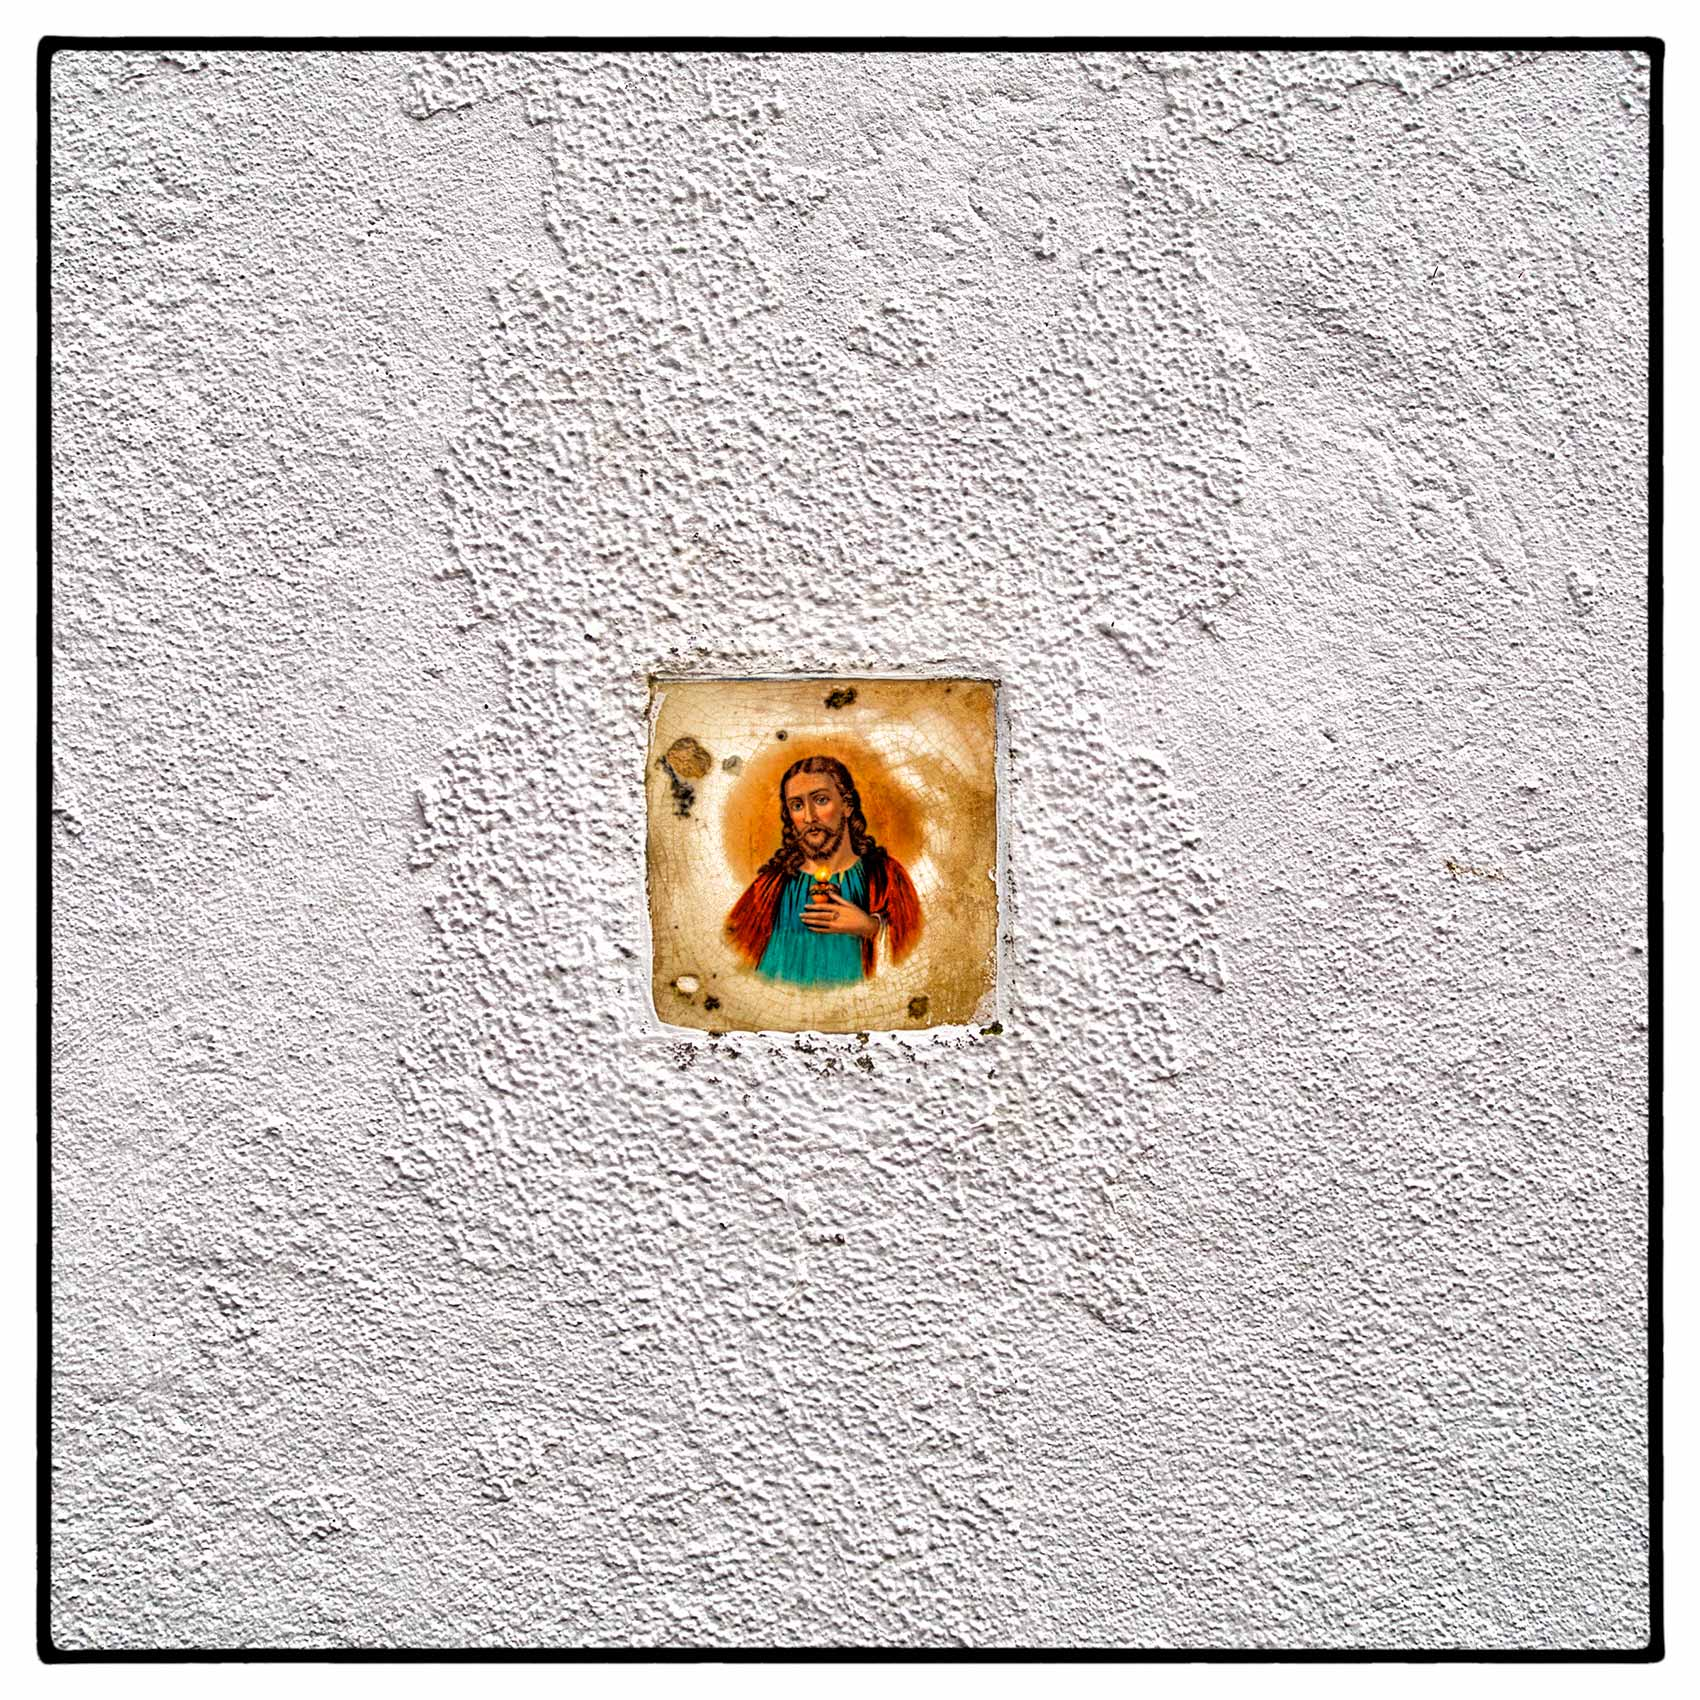 a-tile-with-the-face-of-jesus-christ-on-it-placed-in-a-wall-outside-a-home-in-portugal